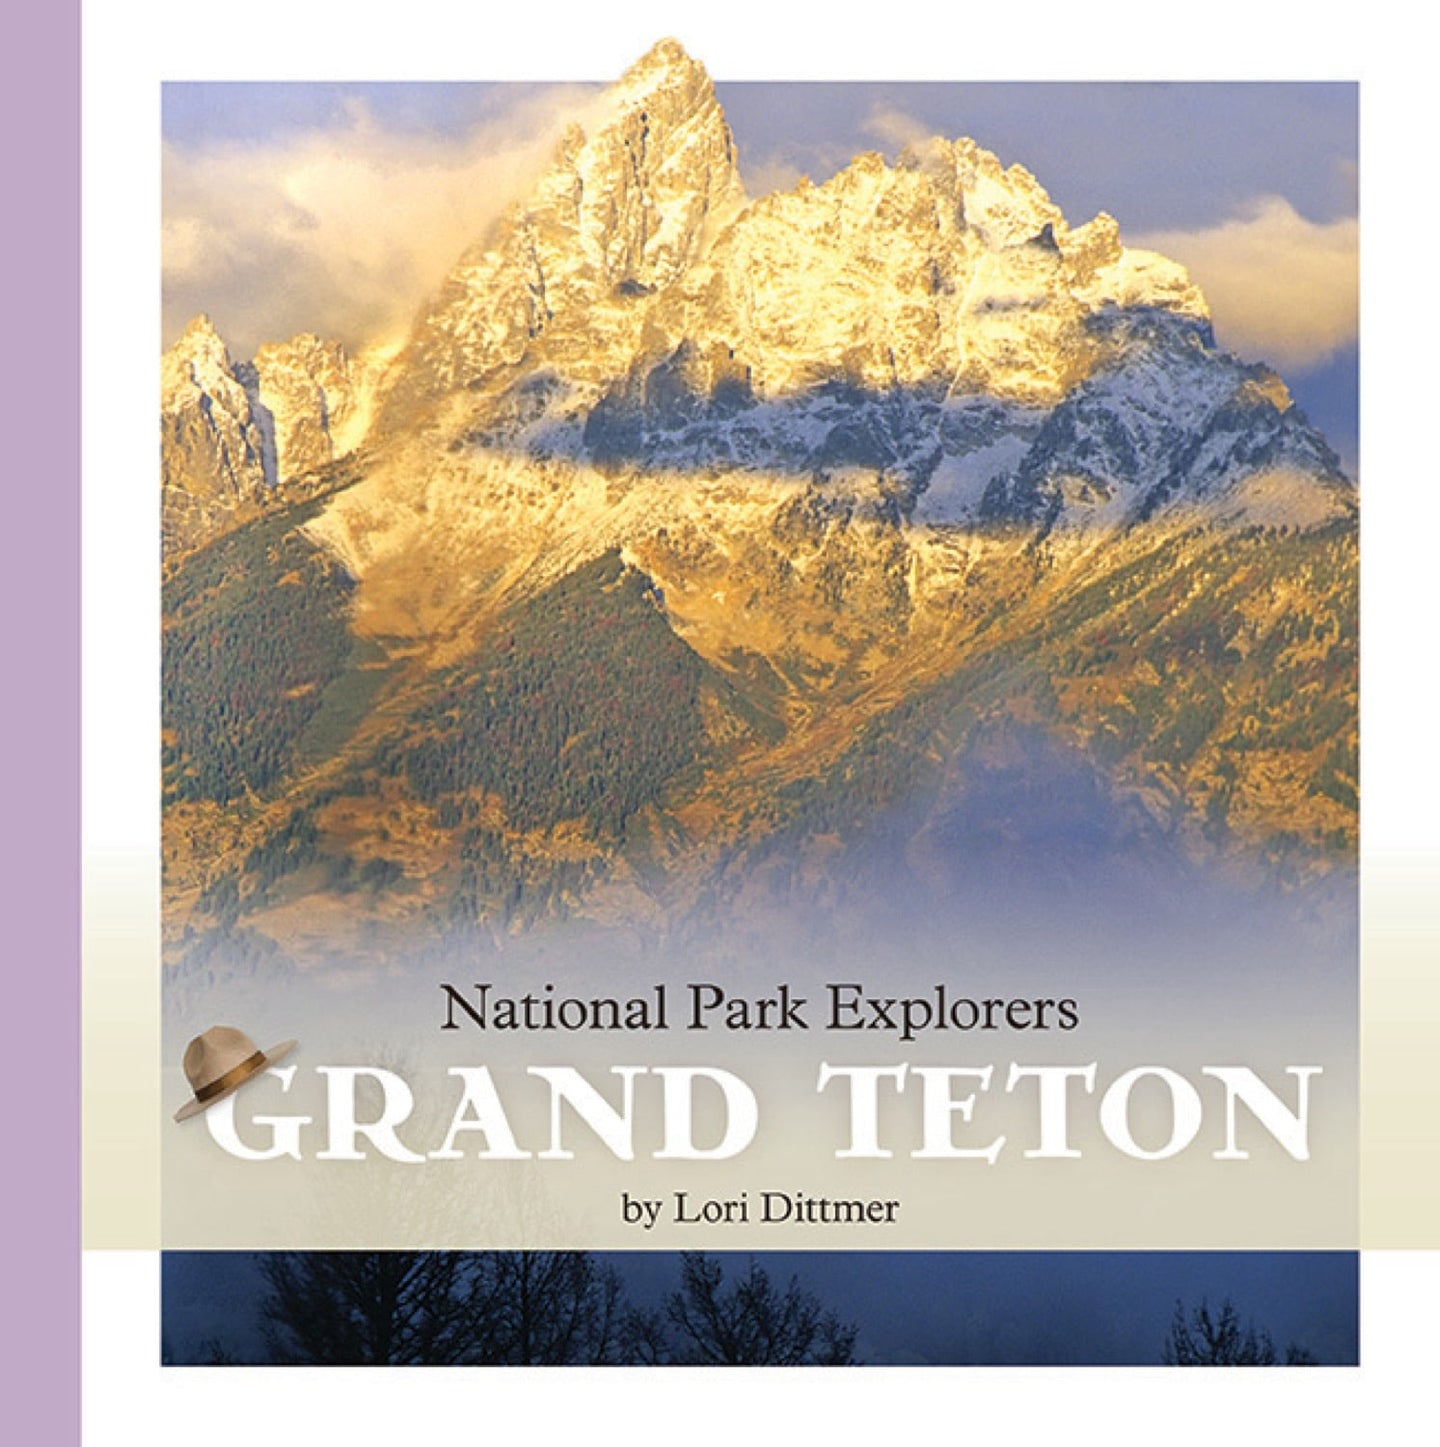 National Park Explorers: Grand Teton